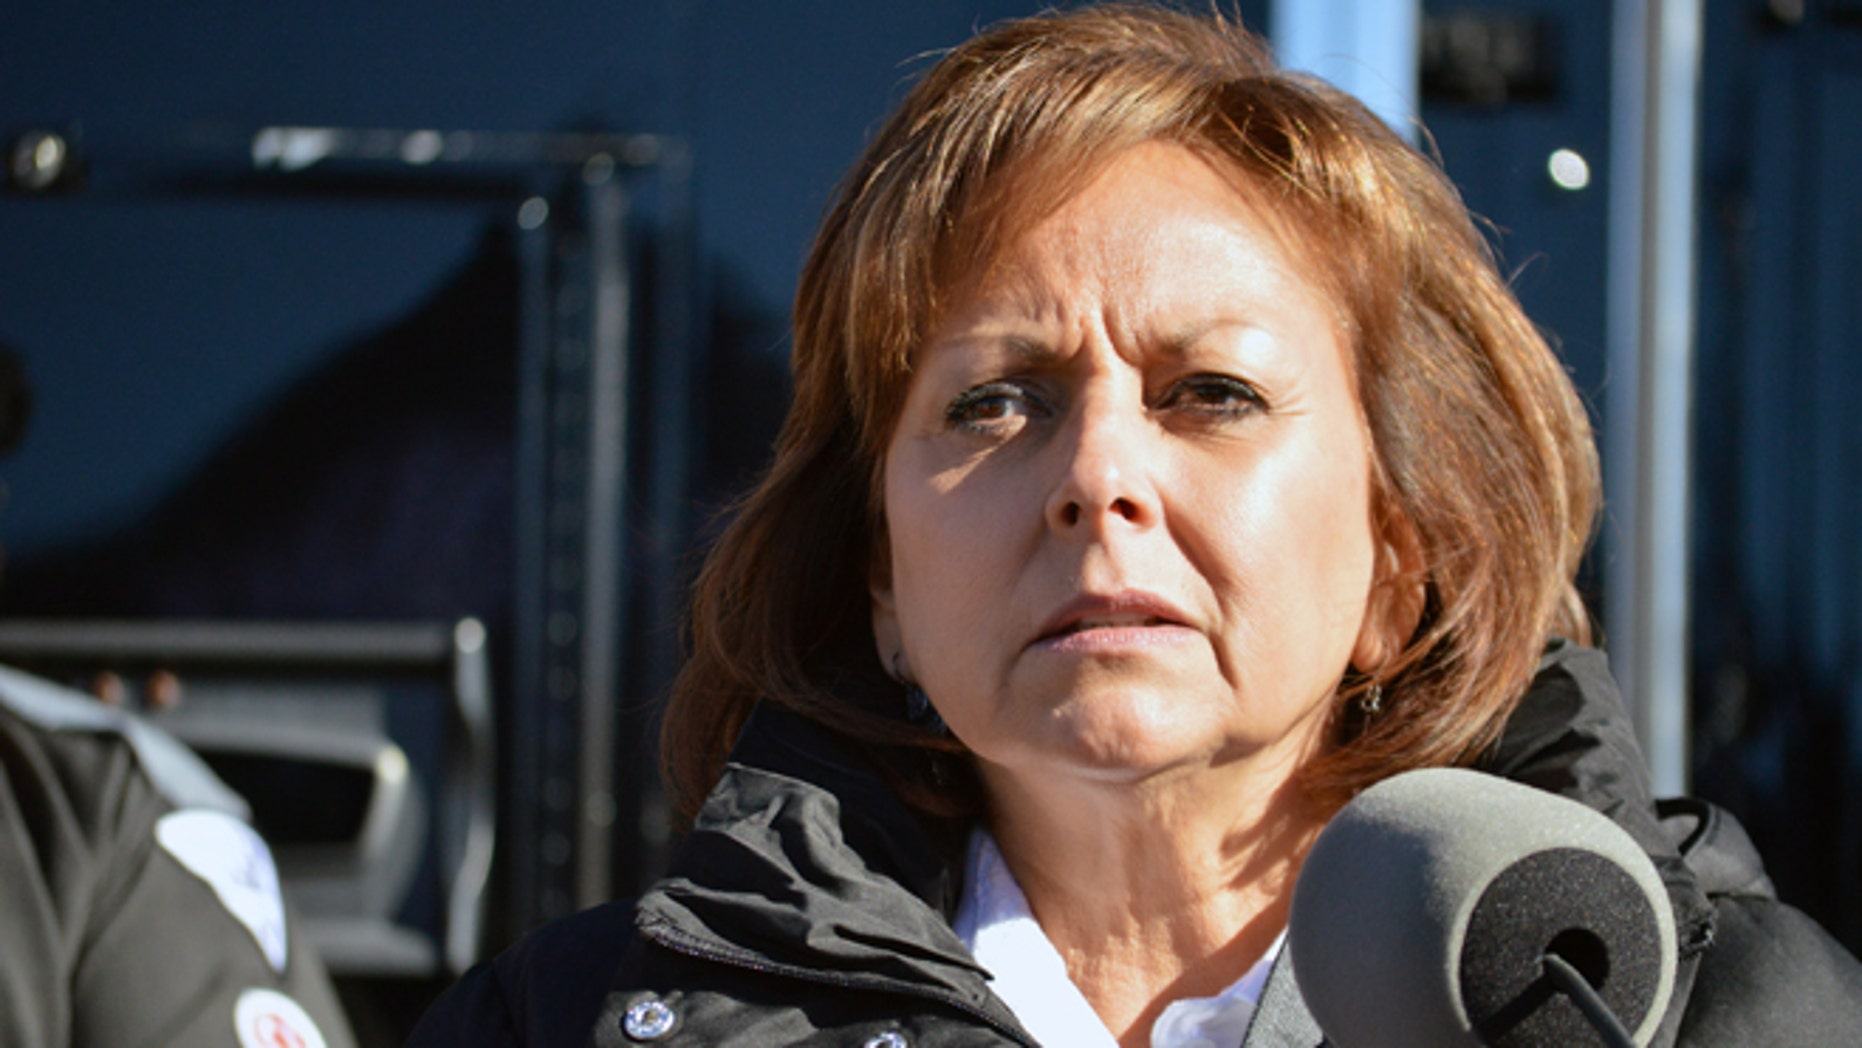 N.M. Gov. Susana Martinez during a news conference in Albuquerque, N.M. on Dec. 14, 2015.